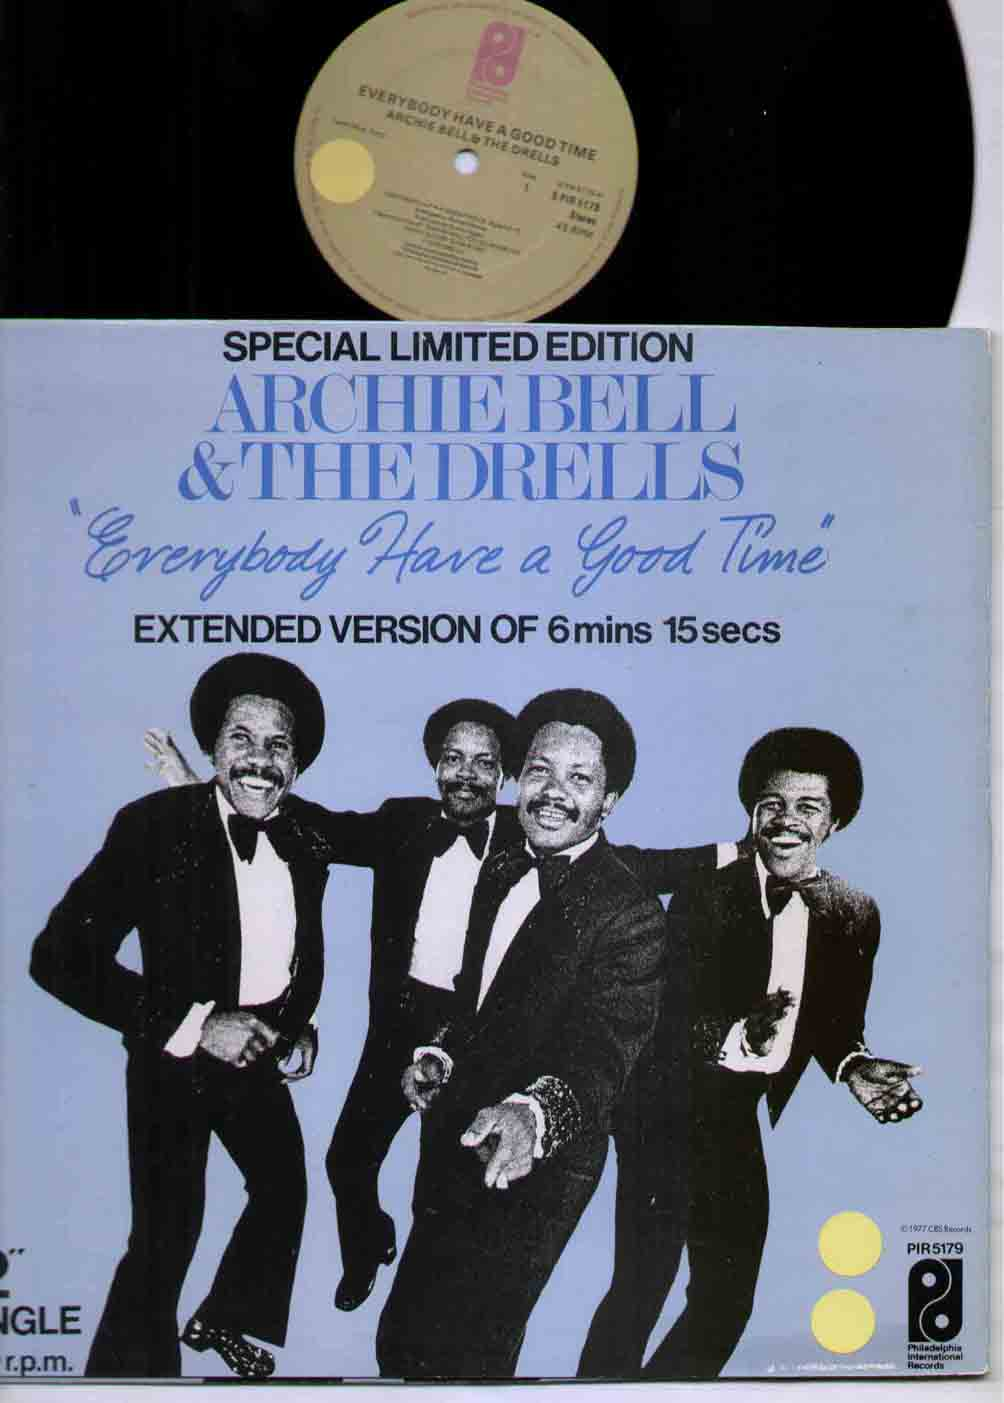 Archie Bell And The Drells Everybody Have A Good Time 12''